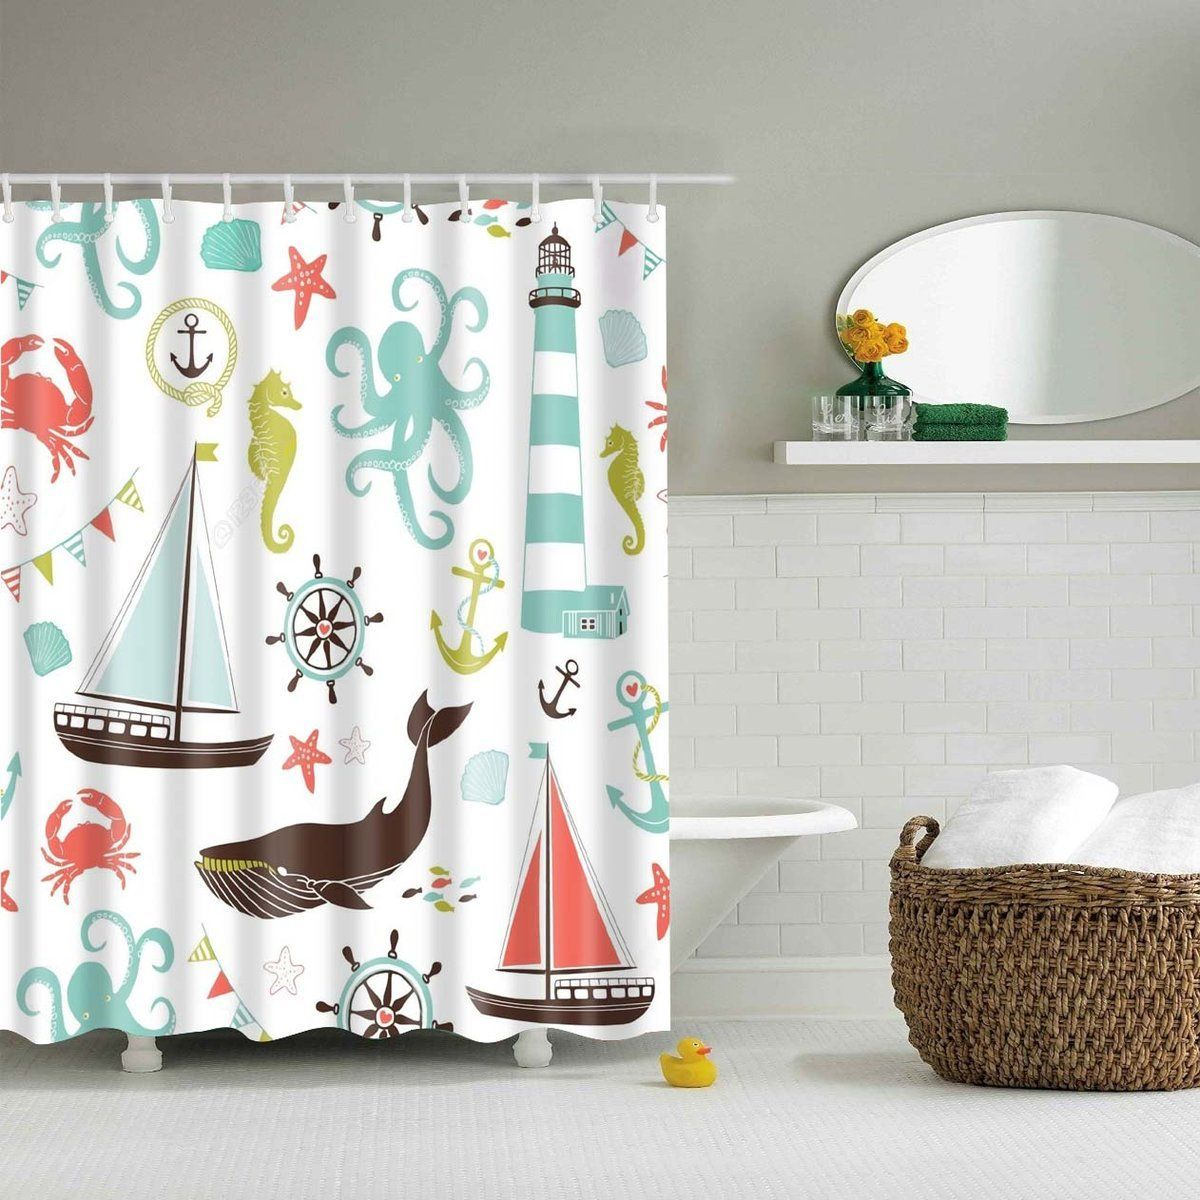 Cute Marine Product Cartoon Kids Shower Curtain Bathroom Decor